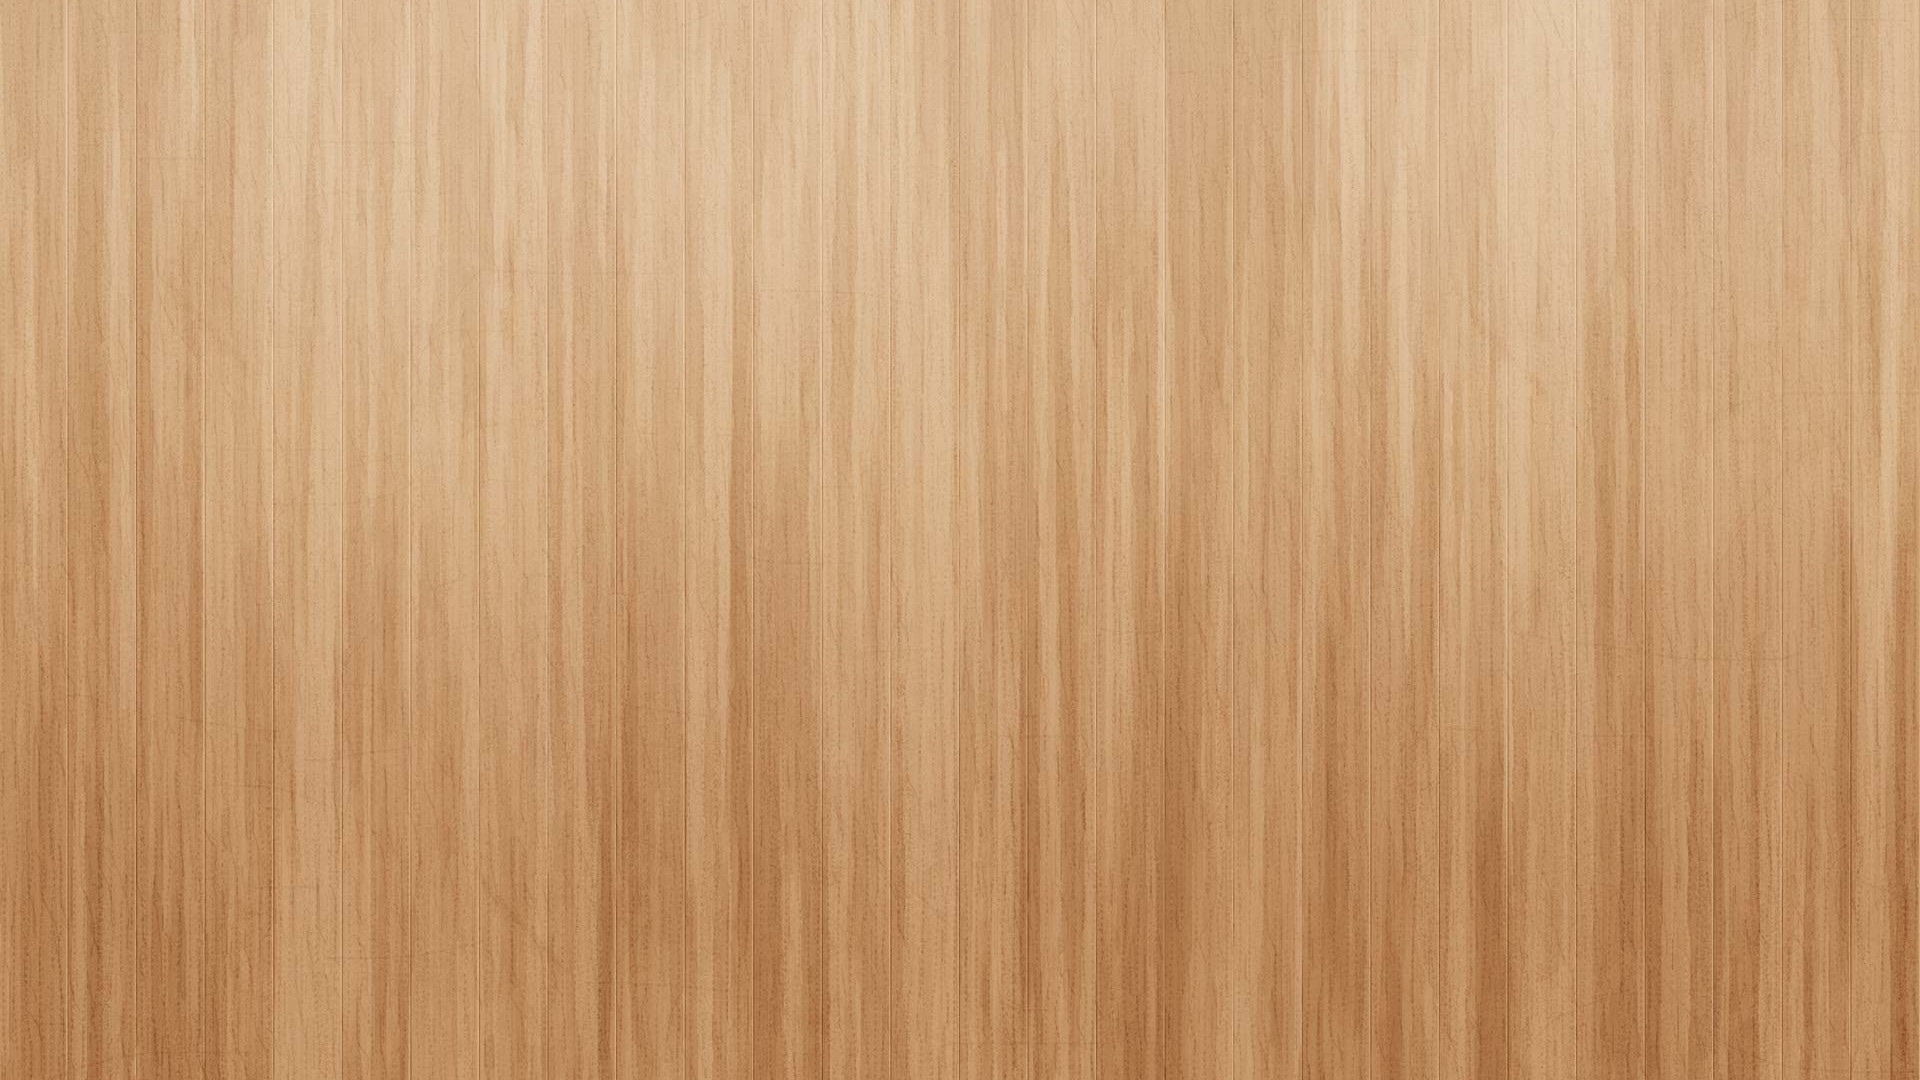 Wood Grain Full HD Wallpaper